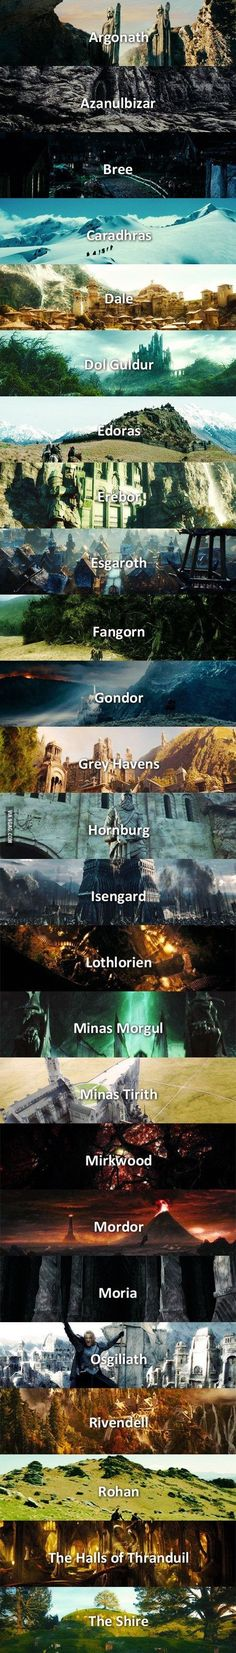 """""""Where there's life there's hope. Tolkien, The Hobbit Jrr Tolkien, Gandalf, Aragorn, Narnia, The Middle, Middle Earth, Lotr, Into The West, Lord Of The Rings"""